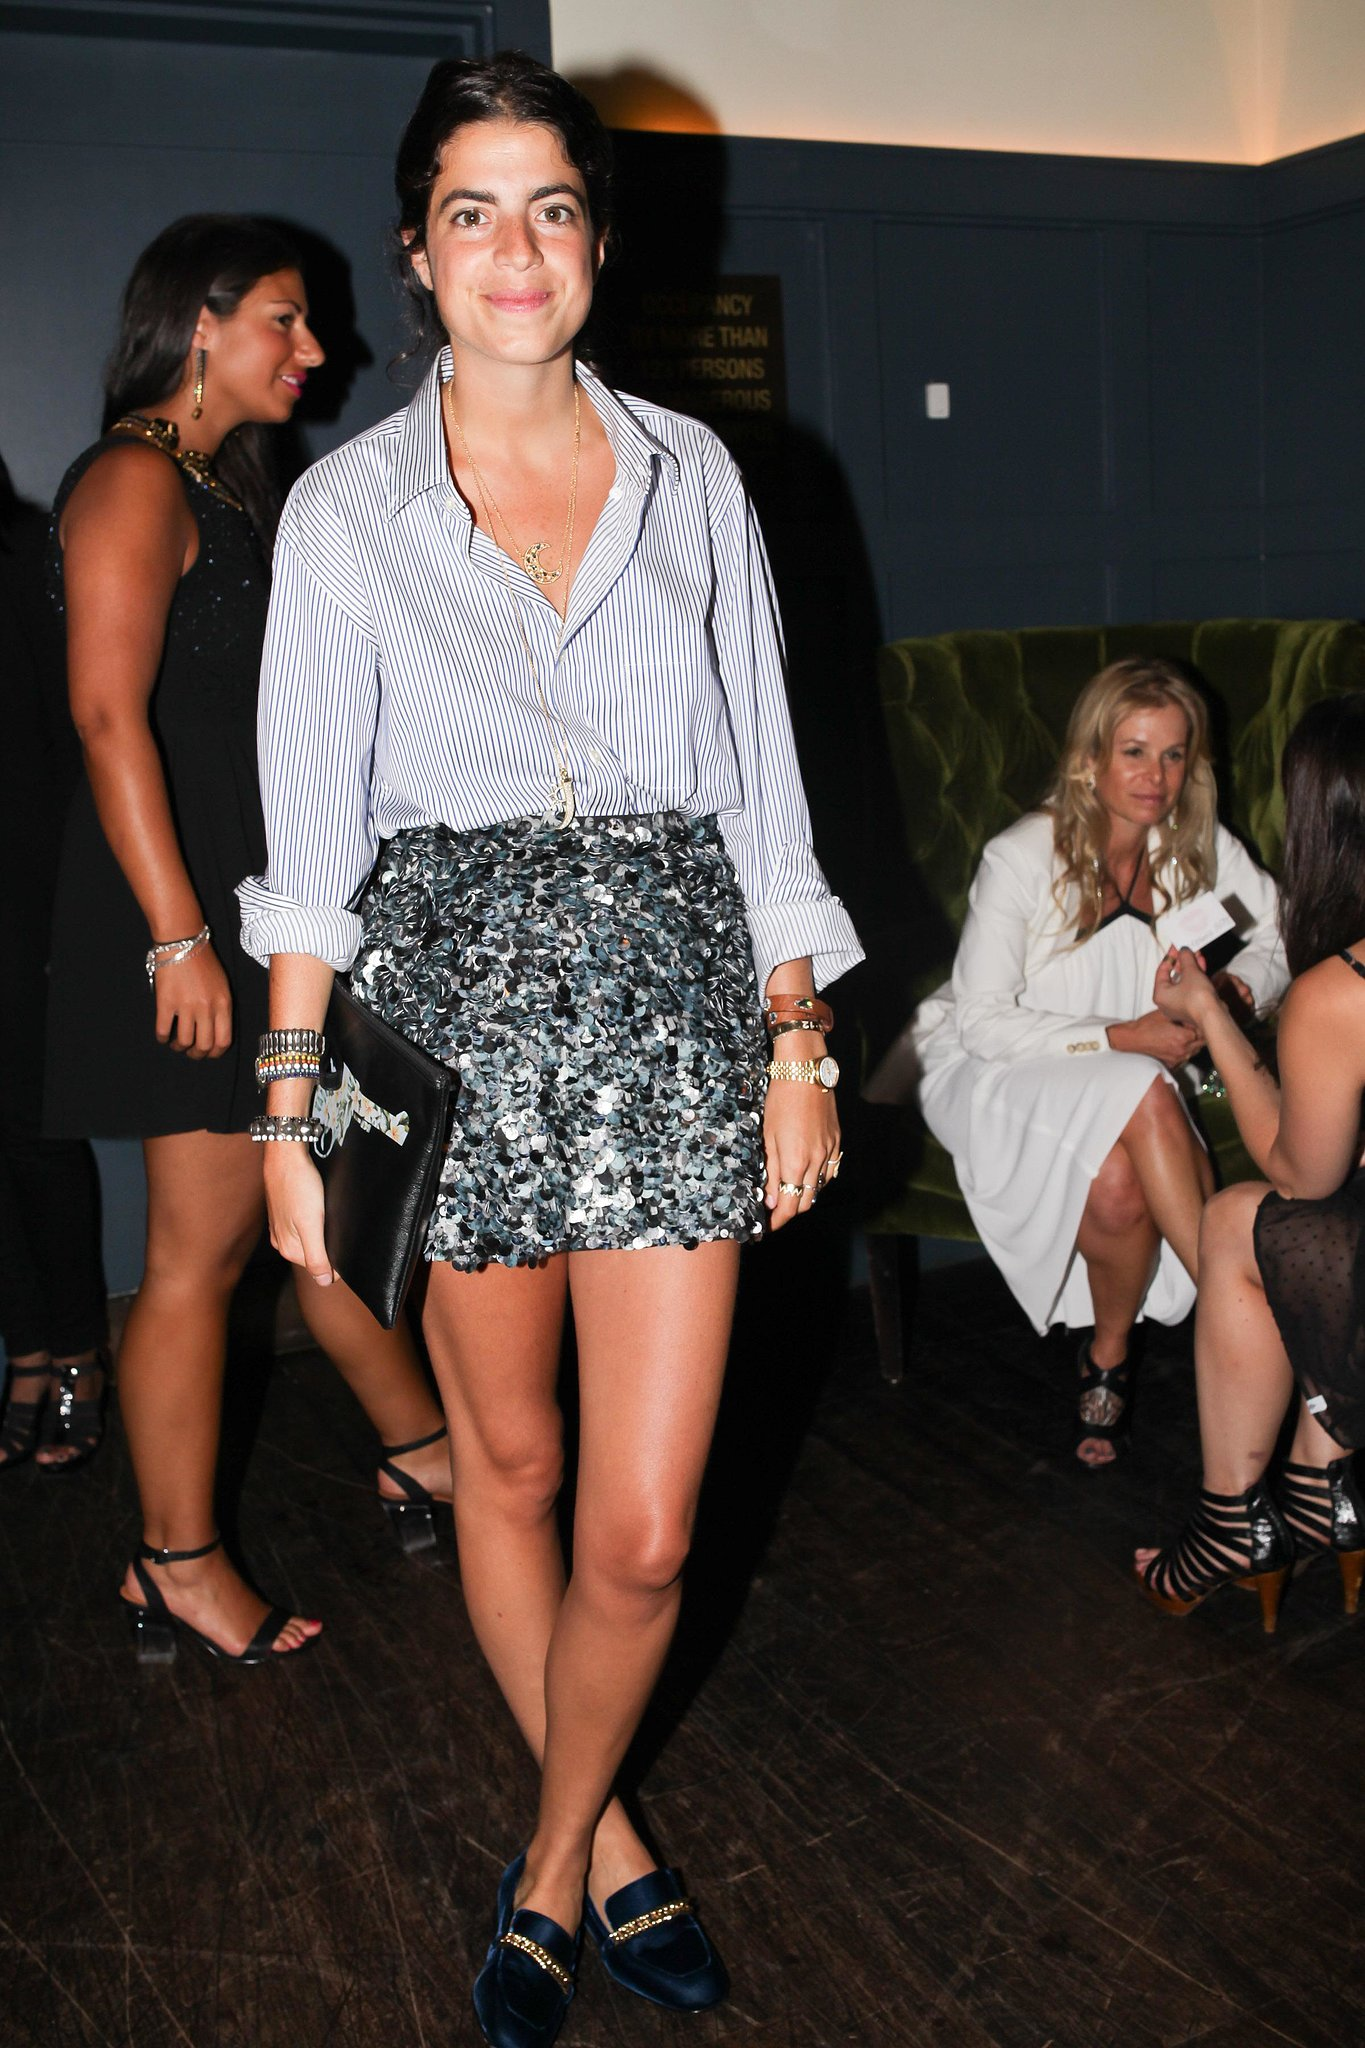 Leandra Medine added a little glamour to her button-down with paillette shorts while previewing Erickson Beamon's latest collection.